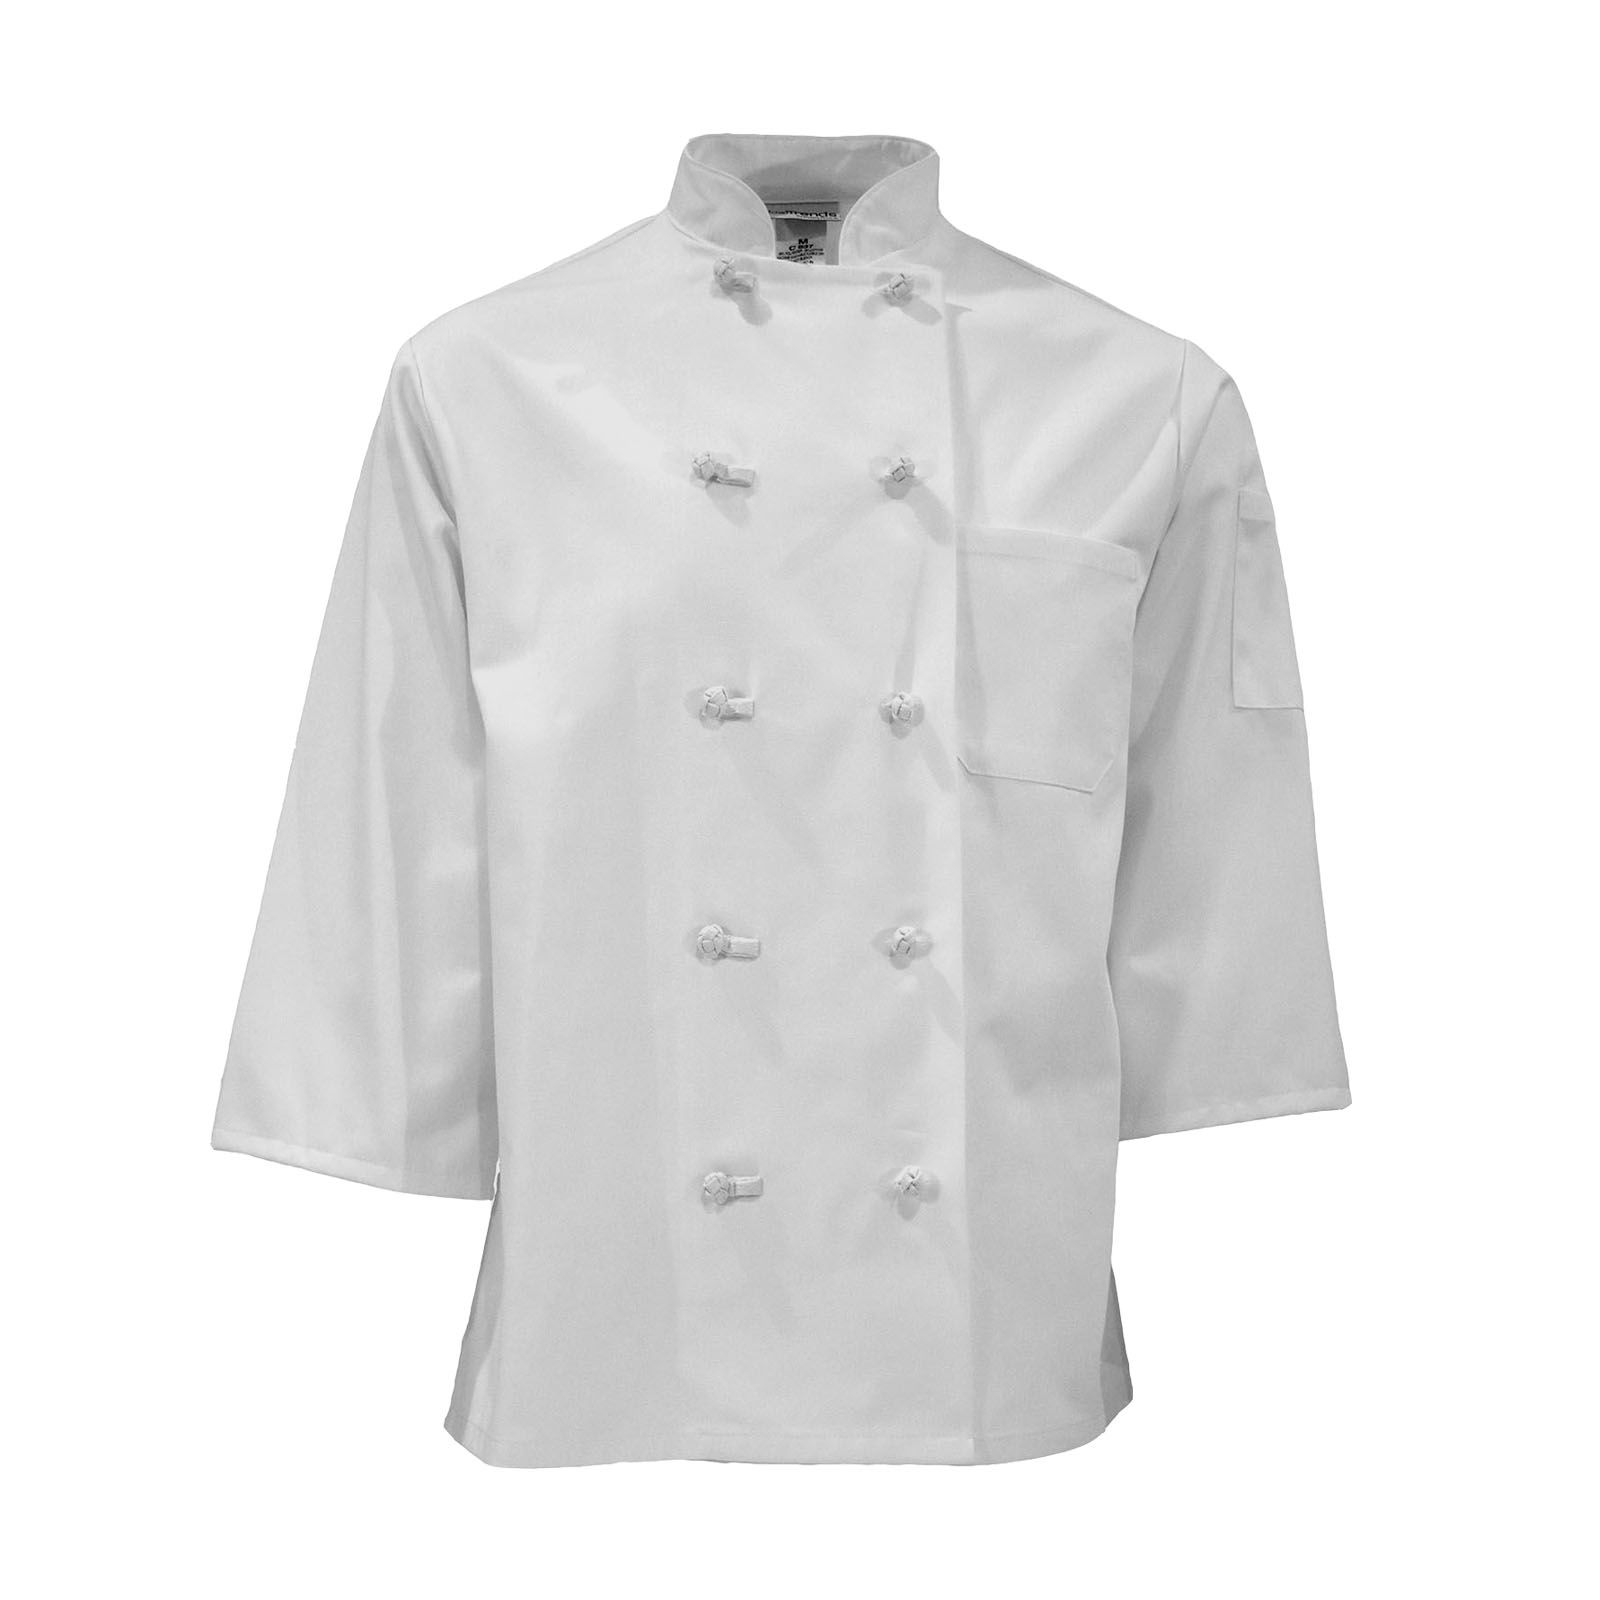 3/4 Sleeve Knot Button Chef Coat-